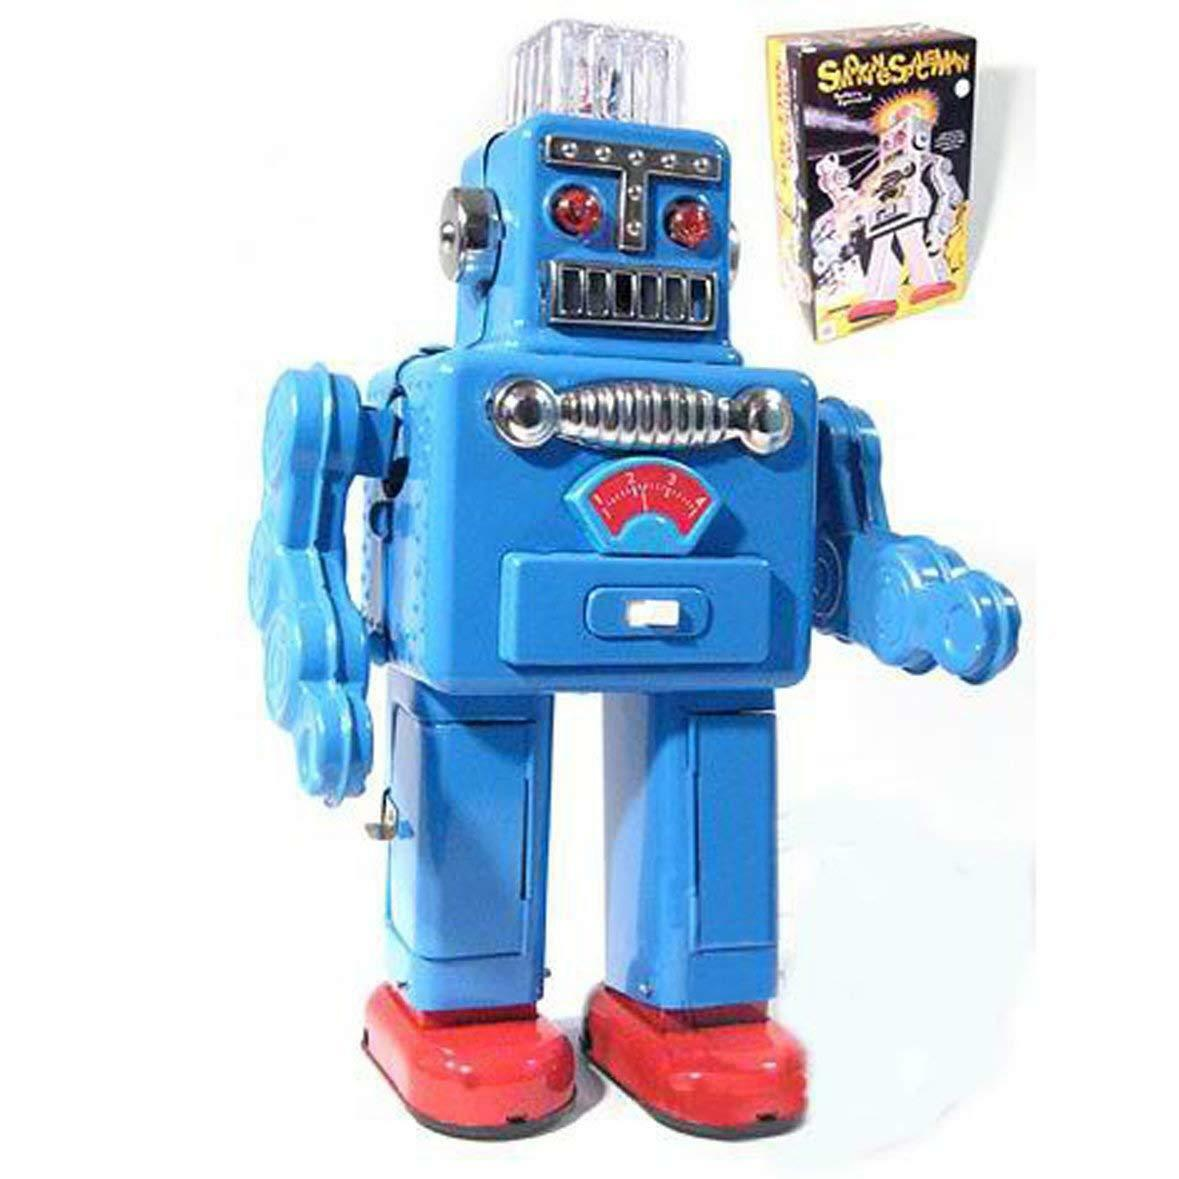 Tr2011 Smoking Spaceman Robot Tin Toy Battery Operated Retro